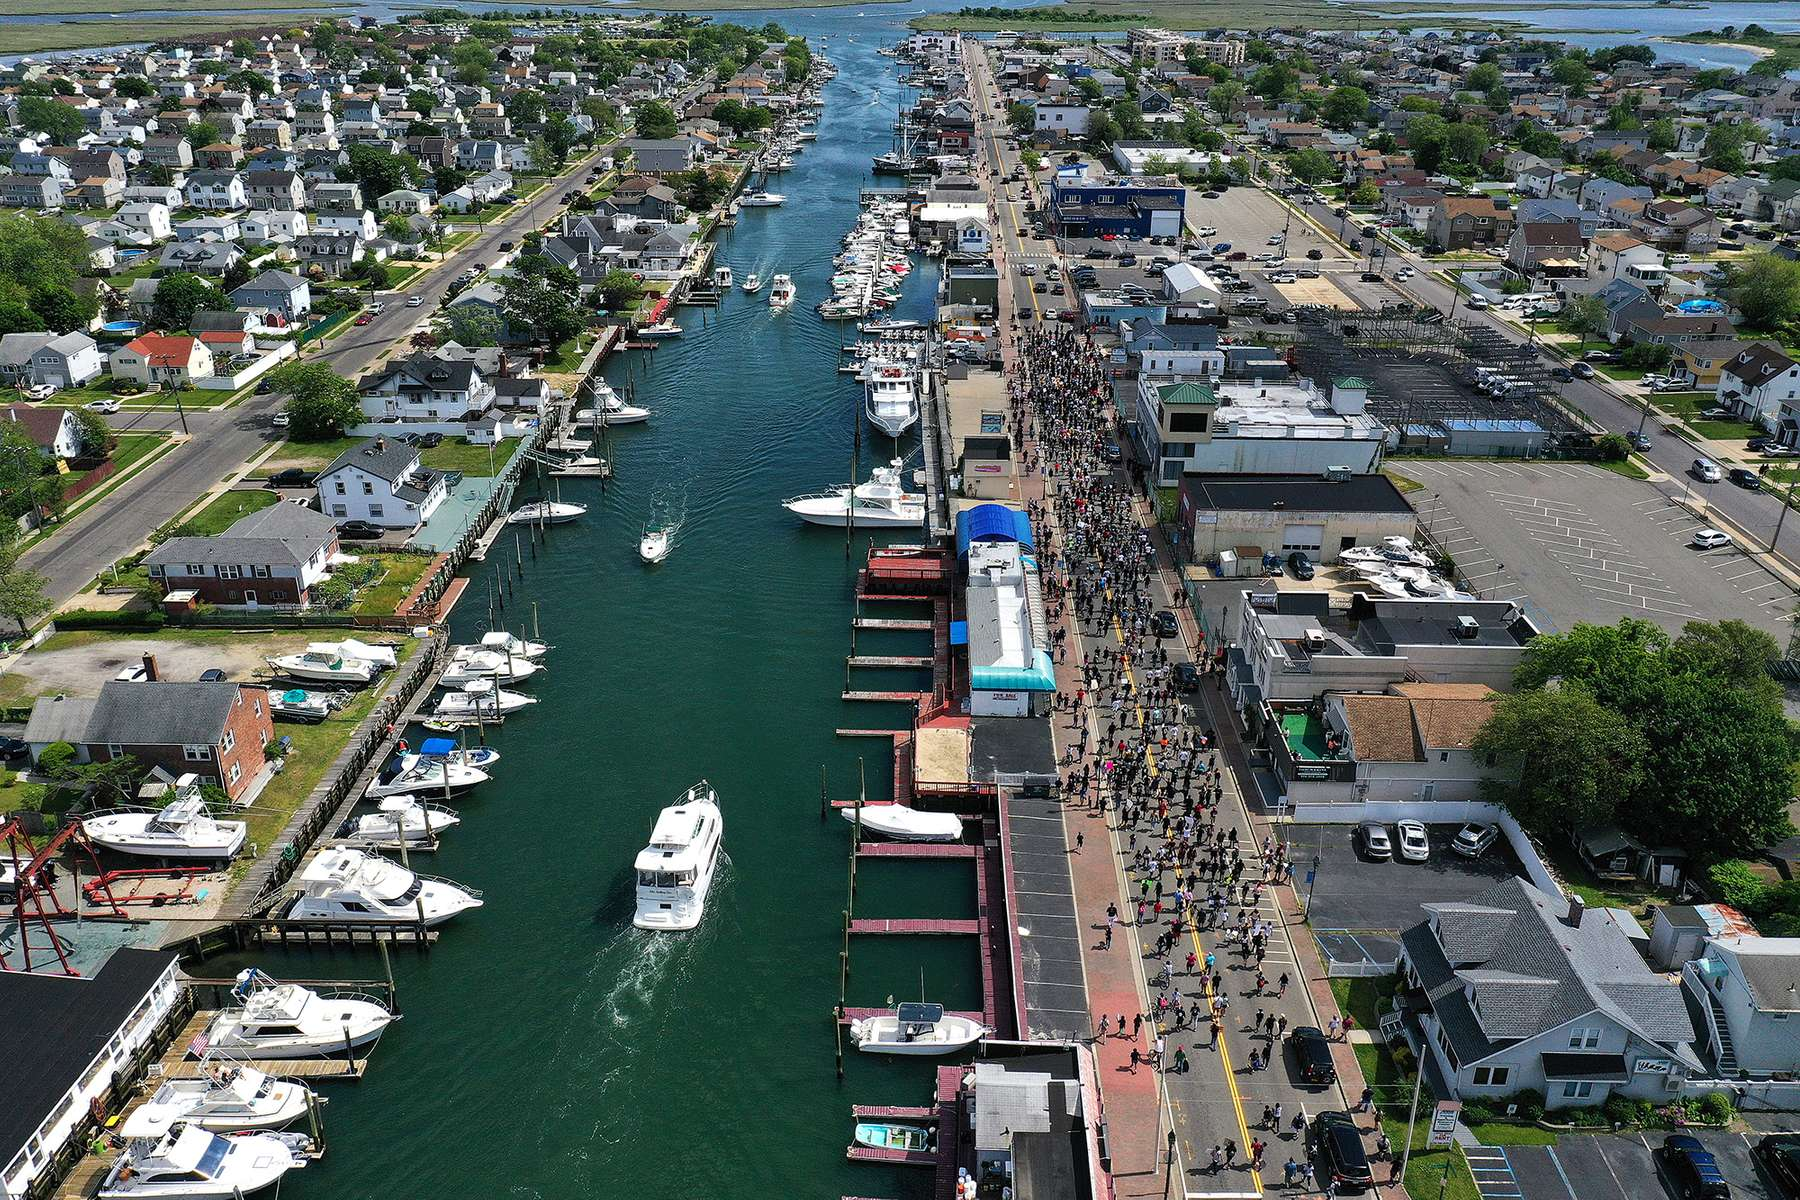 An aerial view of Protesters marching along the Nautical Mile on June 07, 2020 in Freeport, New York.  Minneapolis Police officer Derek Chauvin was filmed kneeling on George Floyd's neck, who was later pronounced dead at a local hospital. Chauvin has been charged with second-degree murder and three other officers who participated in the arrest have been charged with aiding and abetting second-degree murder. Floyd's death, the most recent in a series of deaths of black Americans by the police, has set off days and nights of protests across the country.